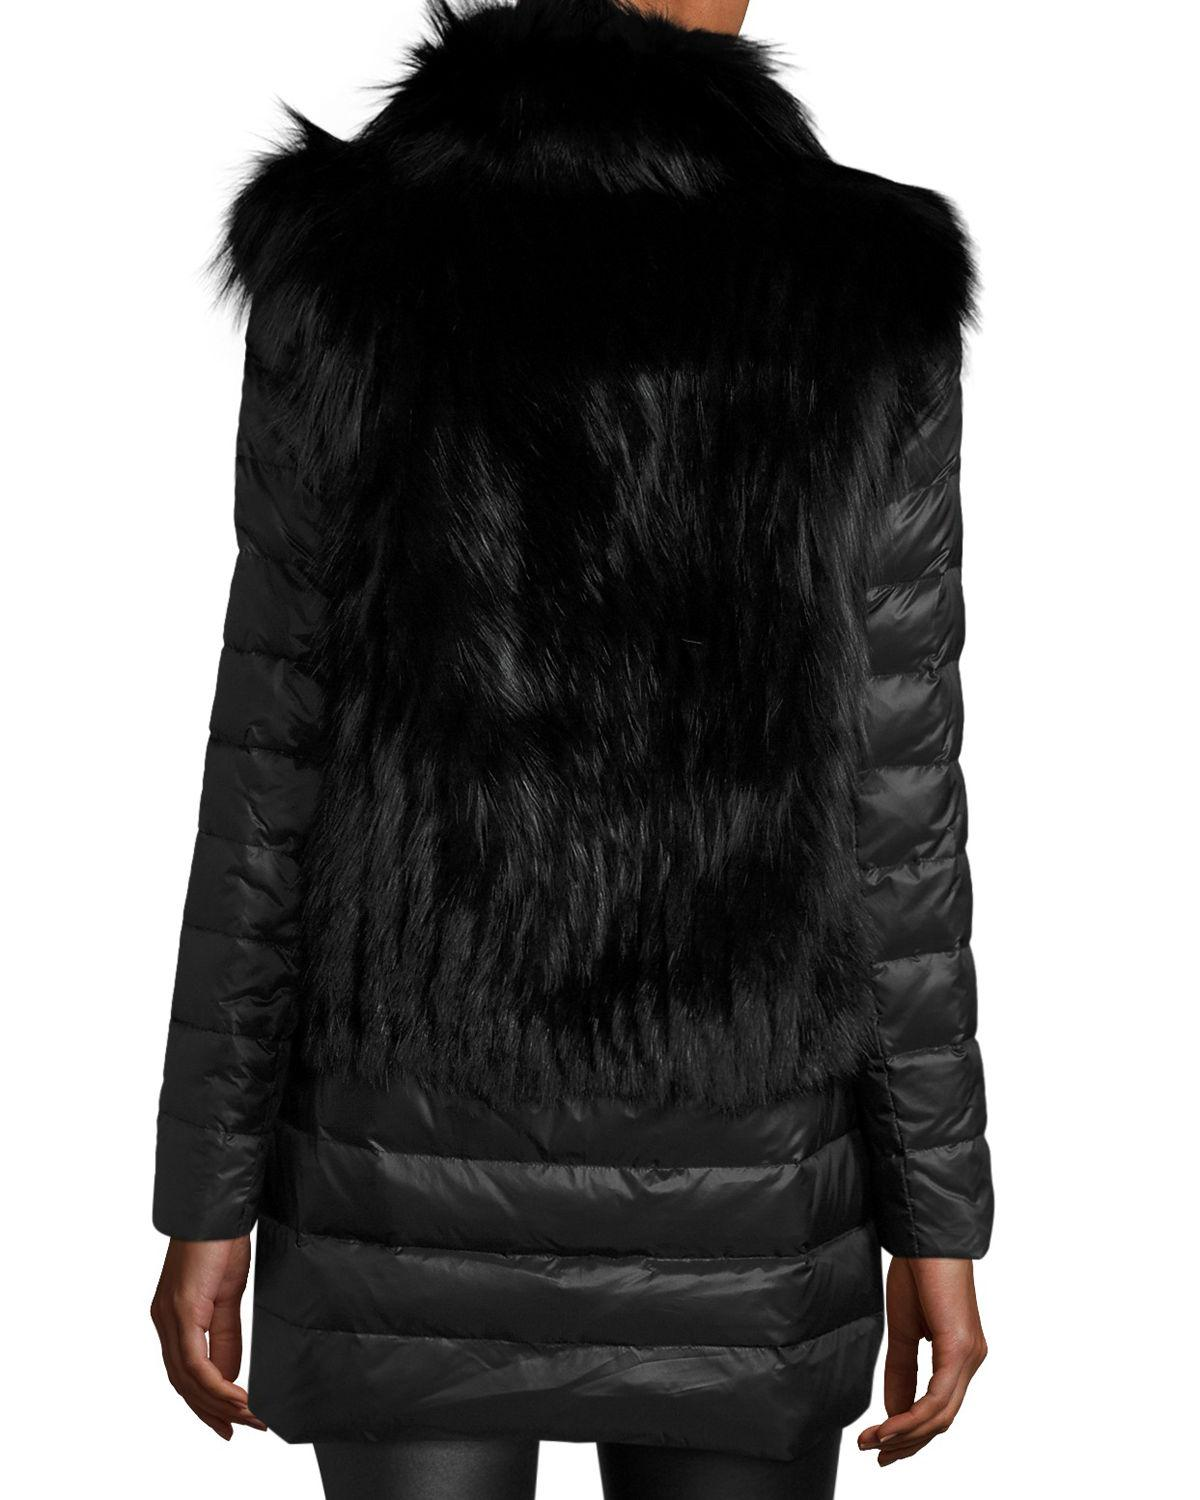 09f49bf03d2 Lyst - Gorski Fox Fur Stroller W/ Removable Down Skirt And Sleeves in Black  - Save 70%